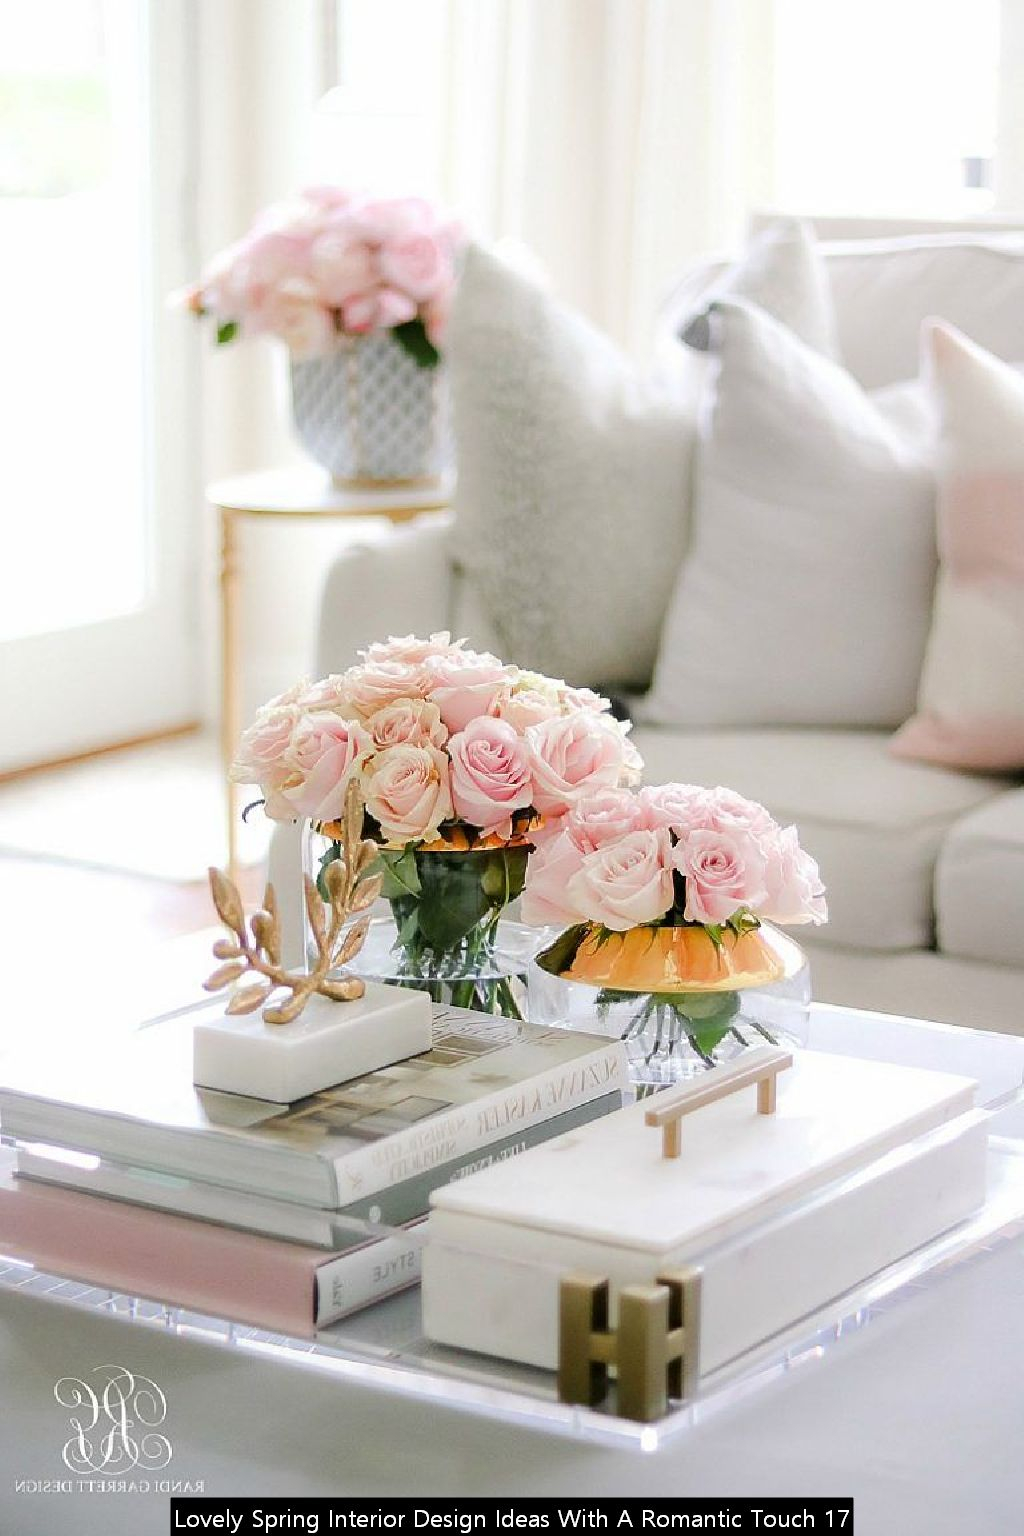 Lovely Spring Interior Design Ideas With A Romantic Touch 17